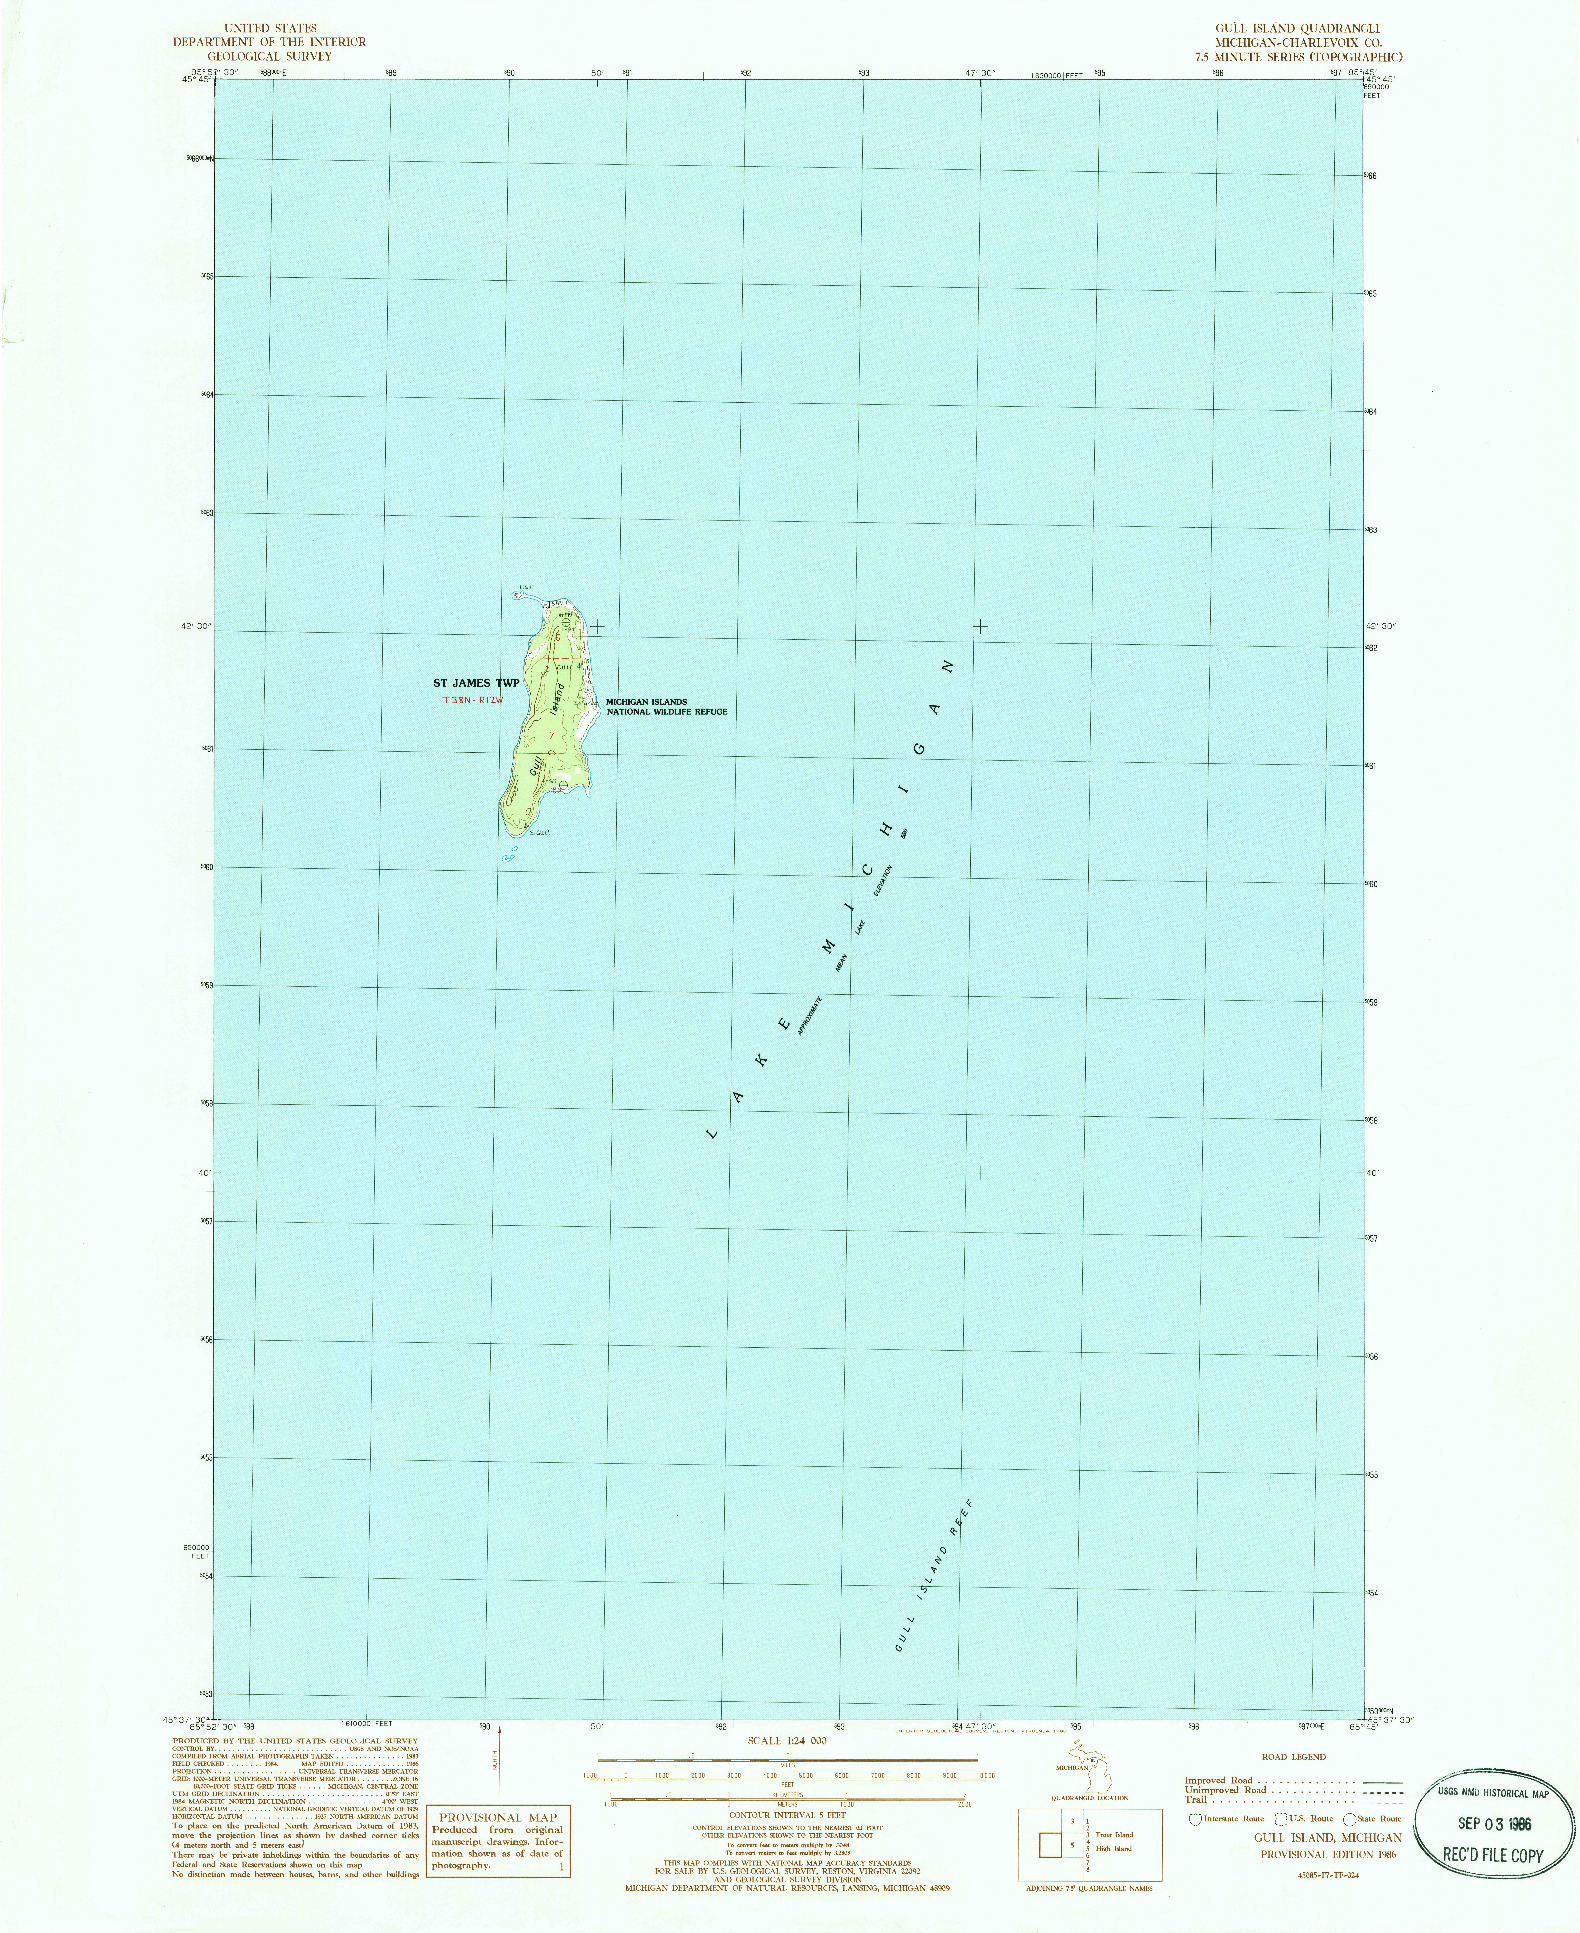 USGS 1:24000-SCALE QUADRANGLE FOR GULL ISLAND, MI 1986